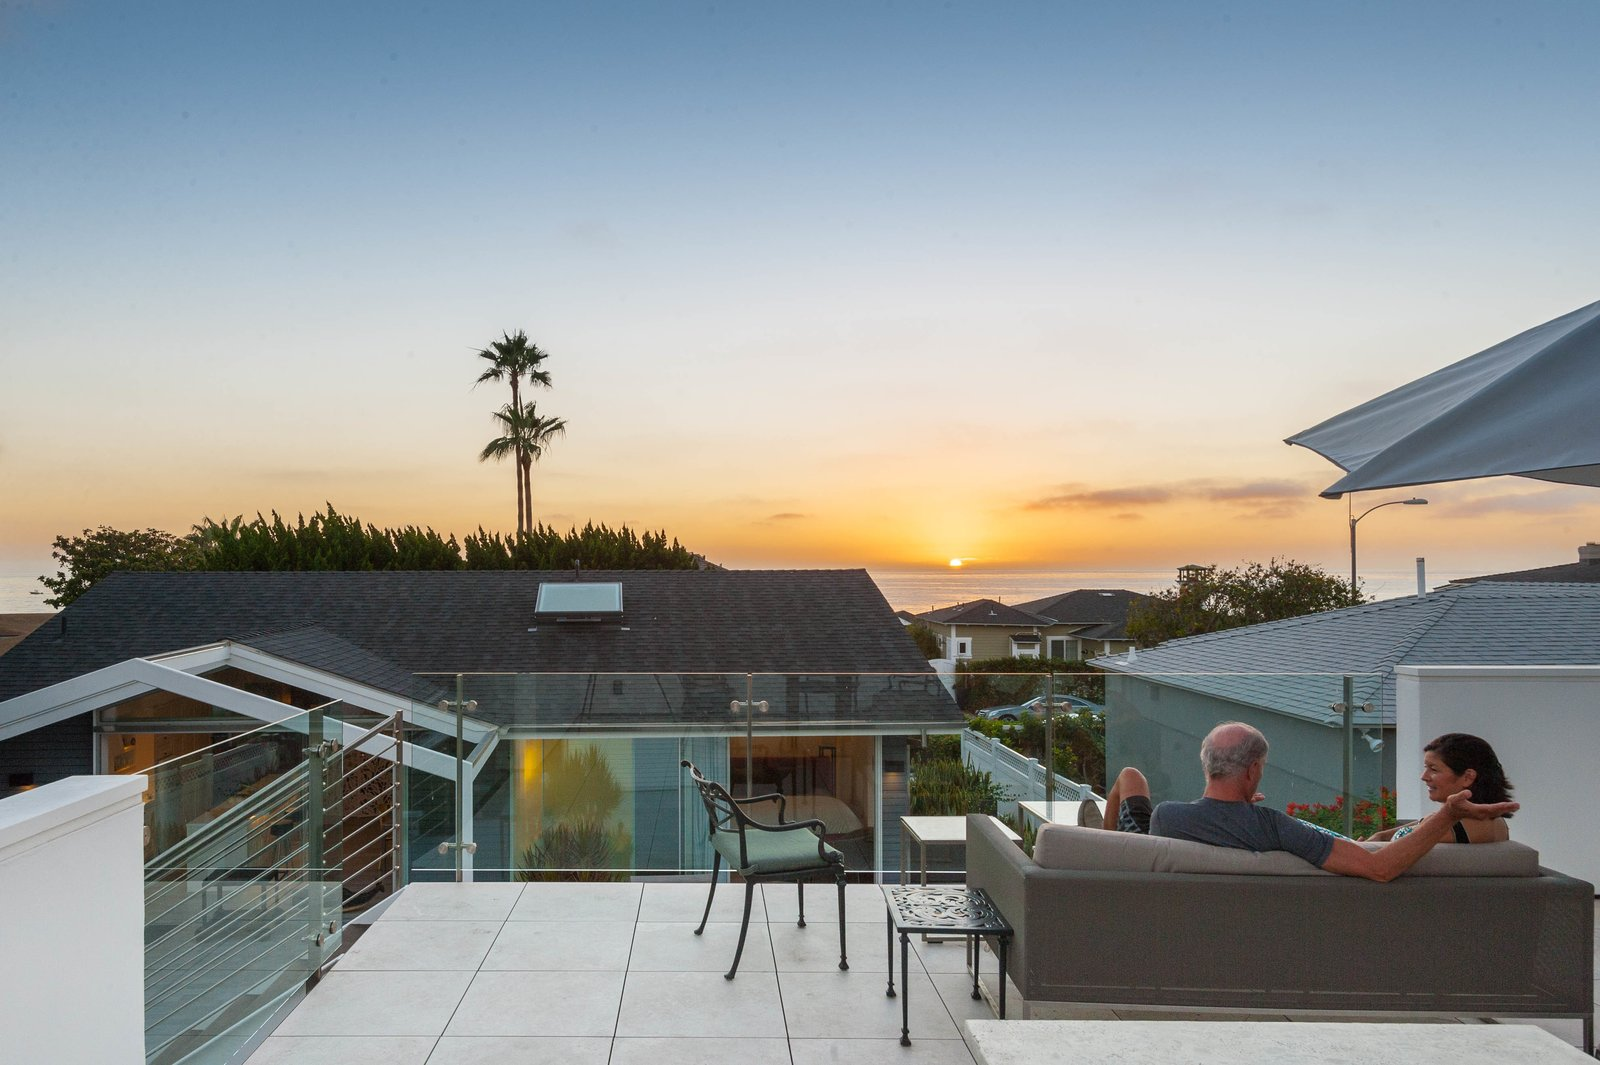 What this cottage lacks in size is made up for by stunning views of the ocean. The homeowners lounge on a Crate & Barrel sofa underneath a Hausers umbrella.  City Homes with Astounding Views by Luke Hopping from A California Cottage Renovated for Easy Indoor-Outdoor Living